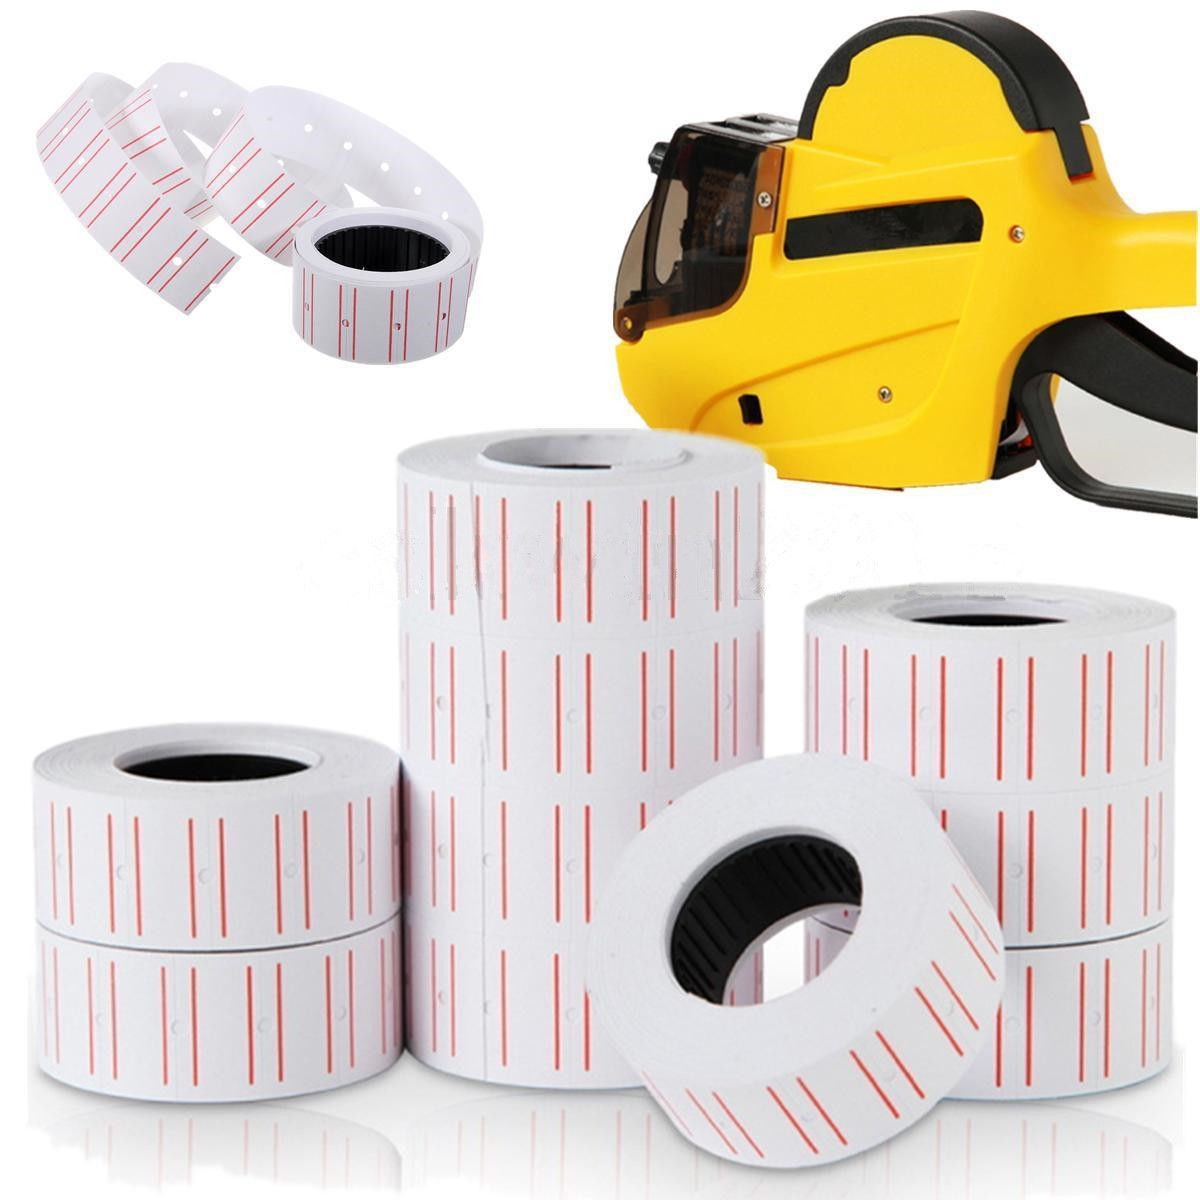 eco friendly self adhesive 250 labels roll name tag label roll labels stickers 10 Rolls (500 Labels/Roll) White Self Adhesive Price Label Tag Sticker Office Supplies 20x12mm Price Label Paper Tag Sticker